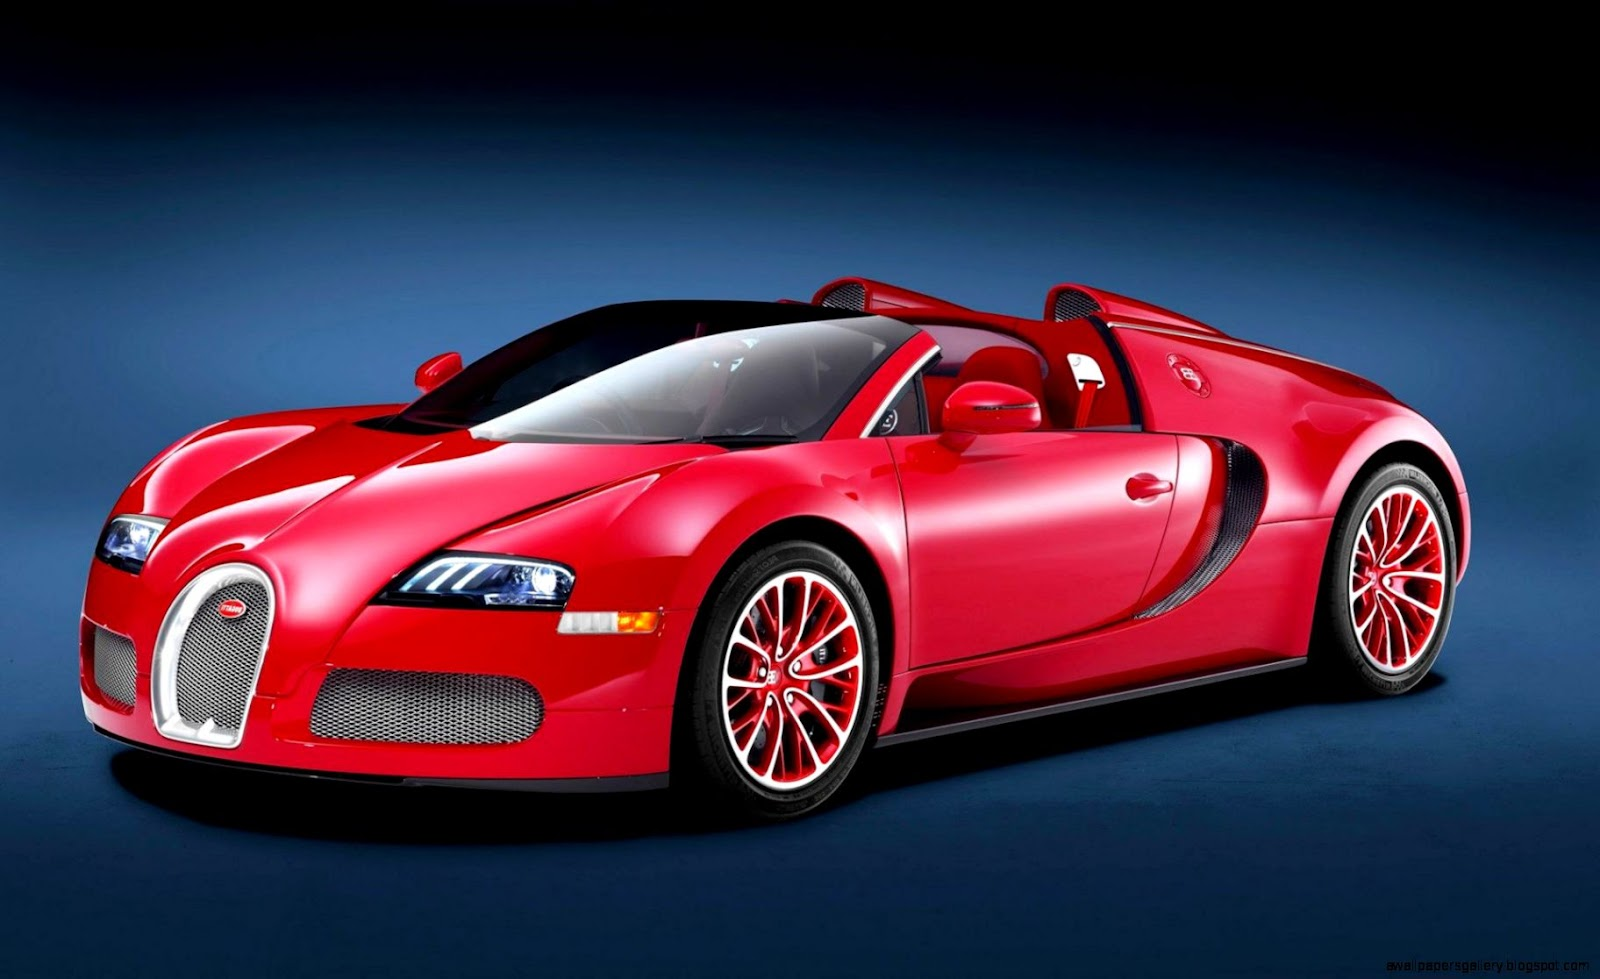 red bugatti wallpaper wallpapers gallery. Black Bedroom Furniture Sets. Home Design Ideas